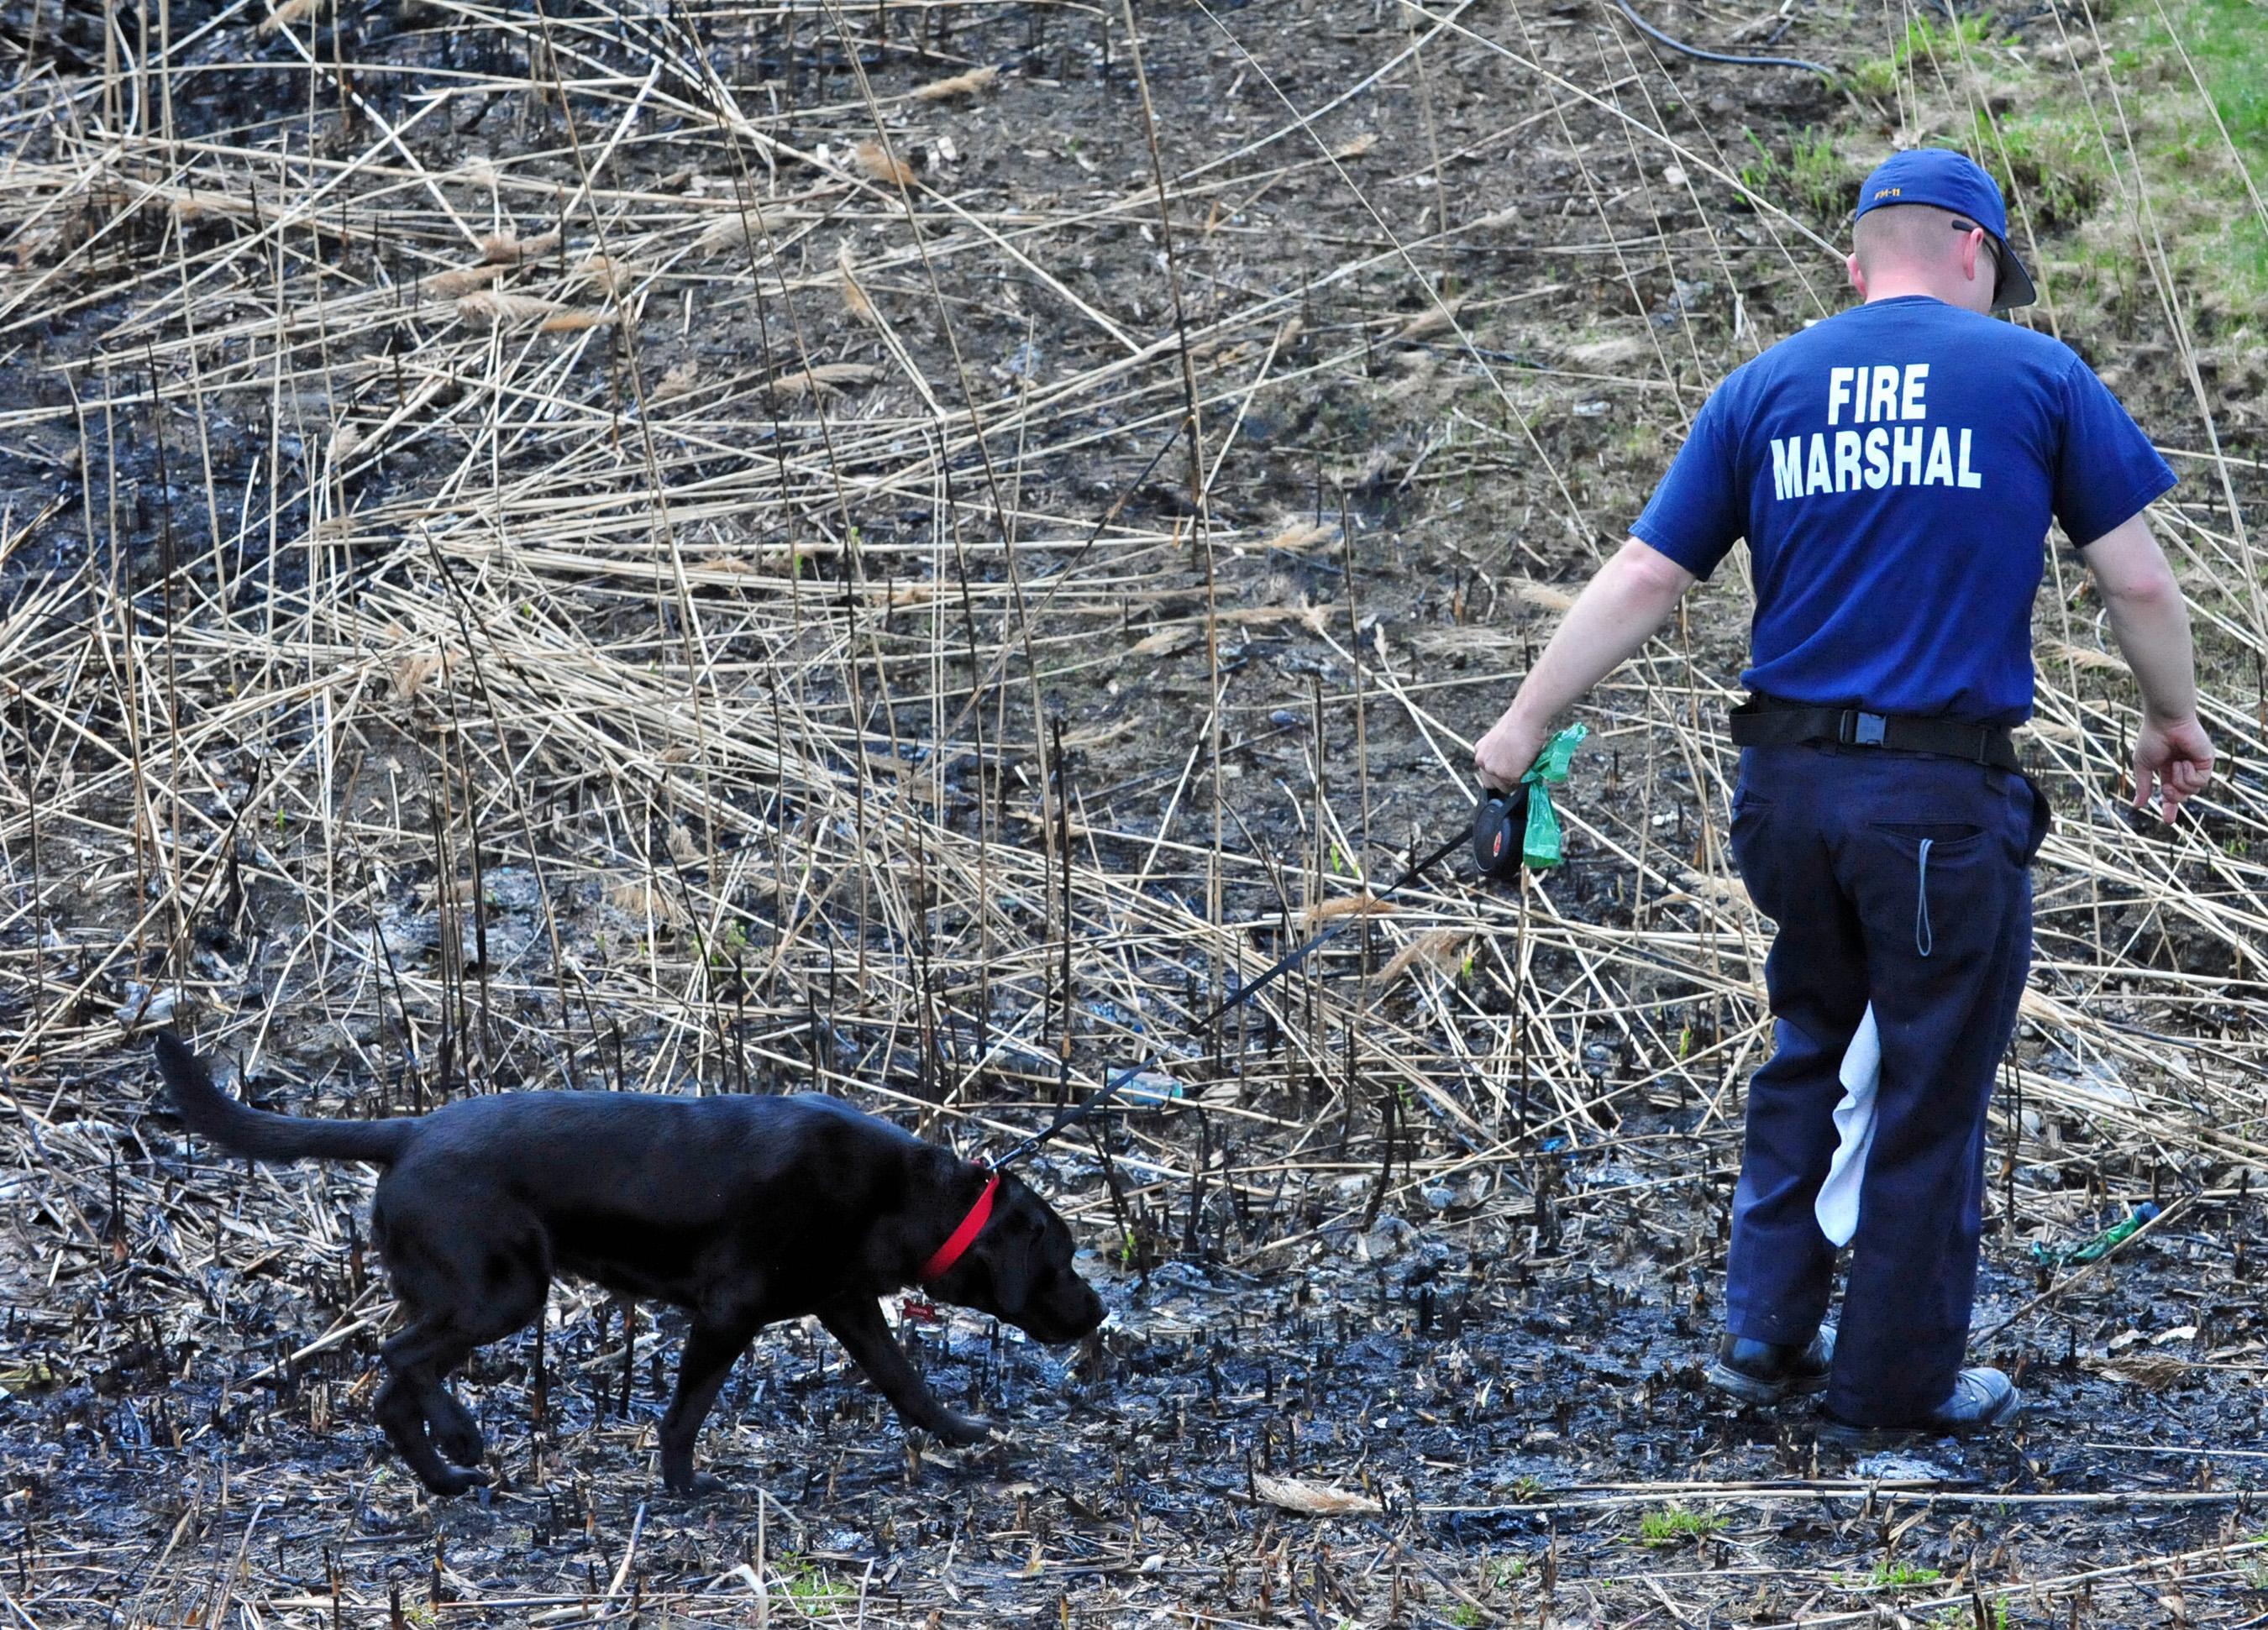 Deputy State Fire Marshal John Galaska and Arson K-9 Tanya with the Delaware State Fire Marshal's Office investigate a burned field for possible evidence of an arson crime.